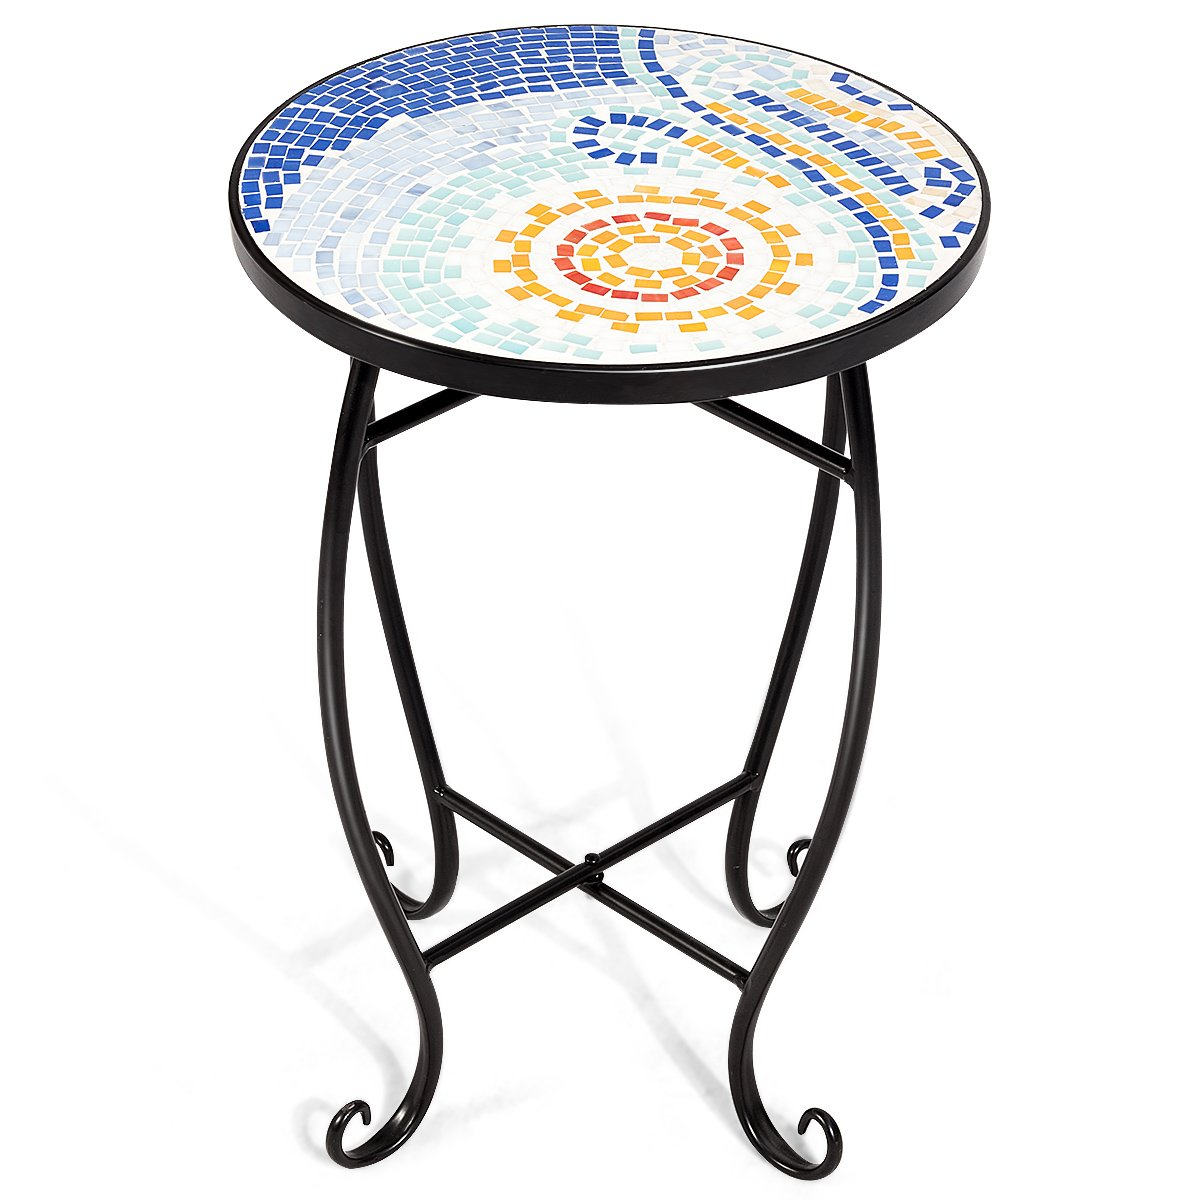 giantex mosaic round side accent table patio plant blue stand porch beach theme balcony back deck pool decor metal cobalt glass top indoor outdoor coffee end target threshold rug